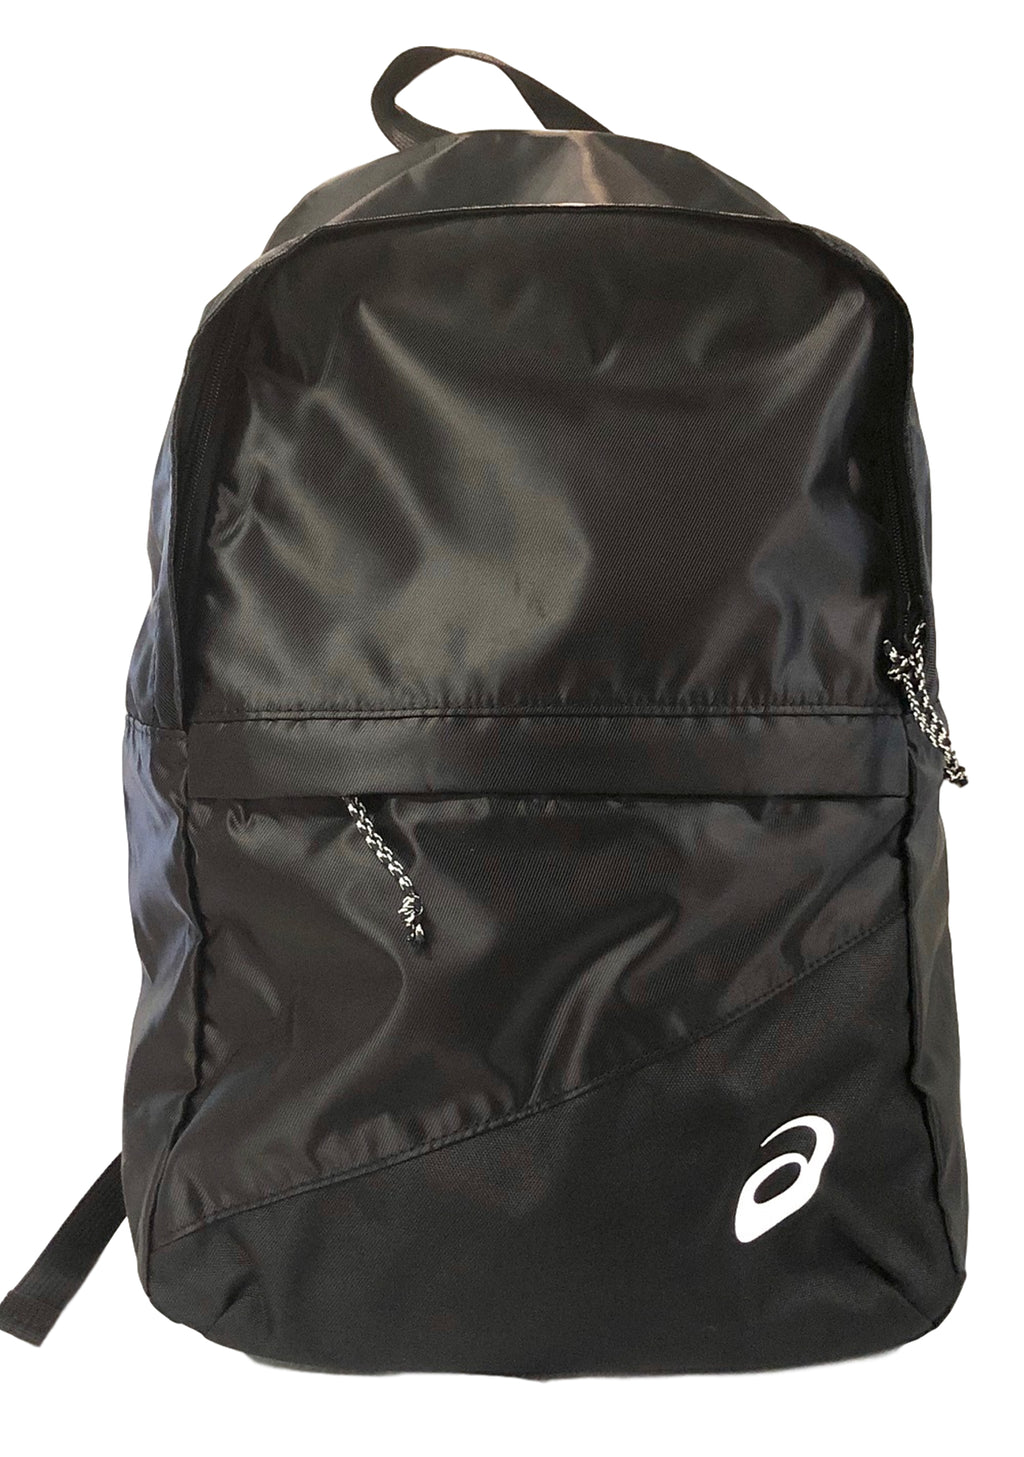 ASICS DAY PACK PERFORMANCE BLACK <BR> 3033A246 001